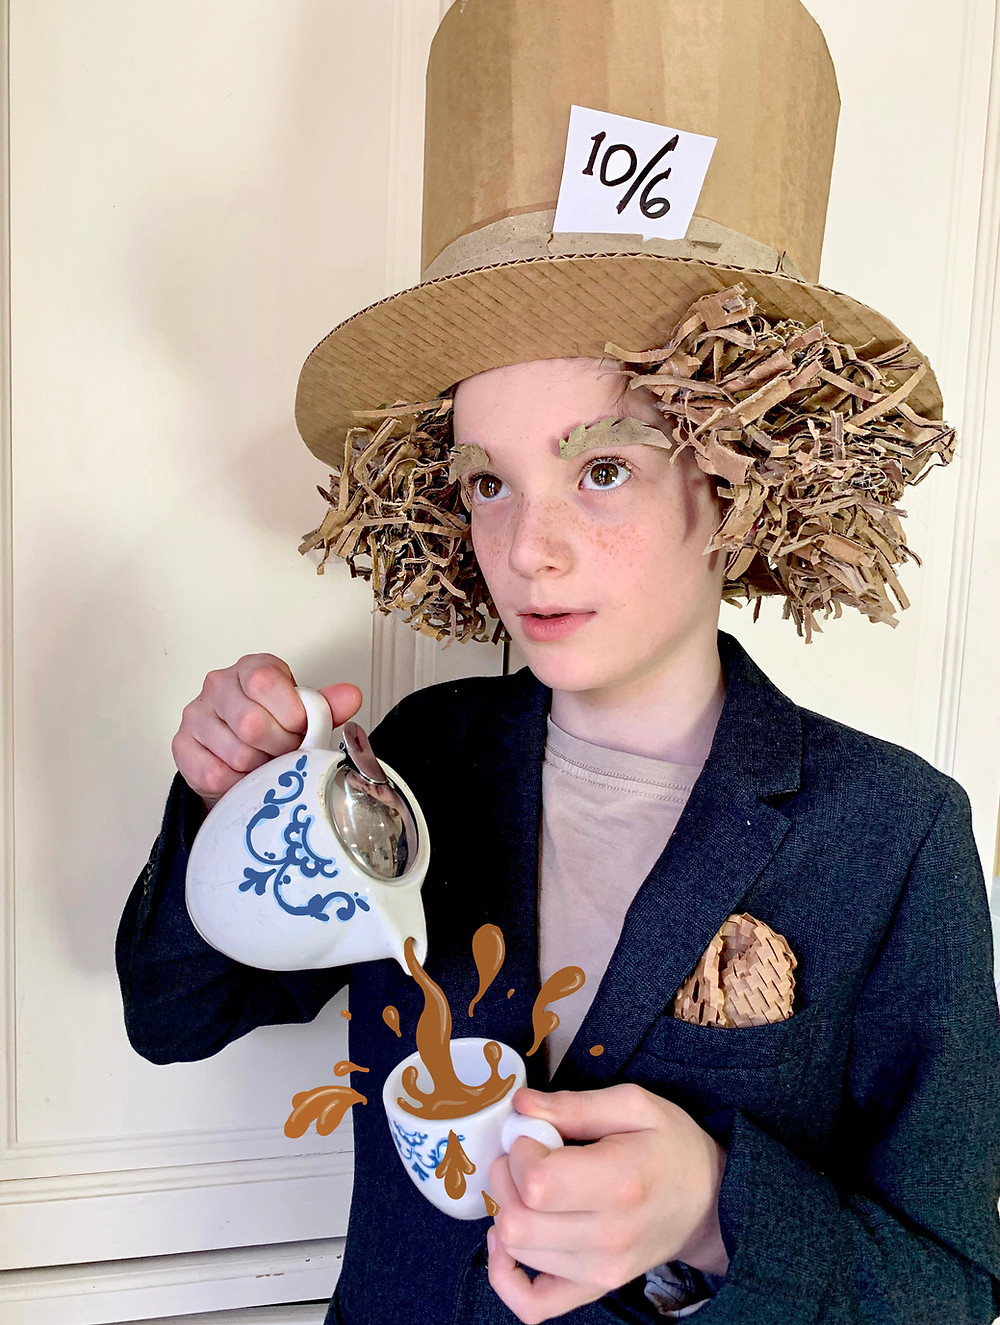 A Mad Hatter cardboard costume made from a downloadable template